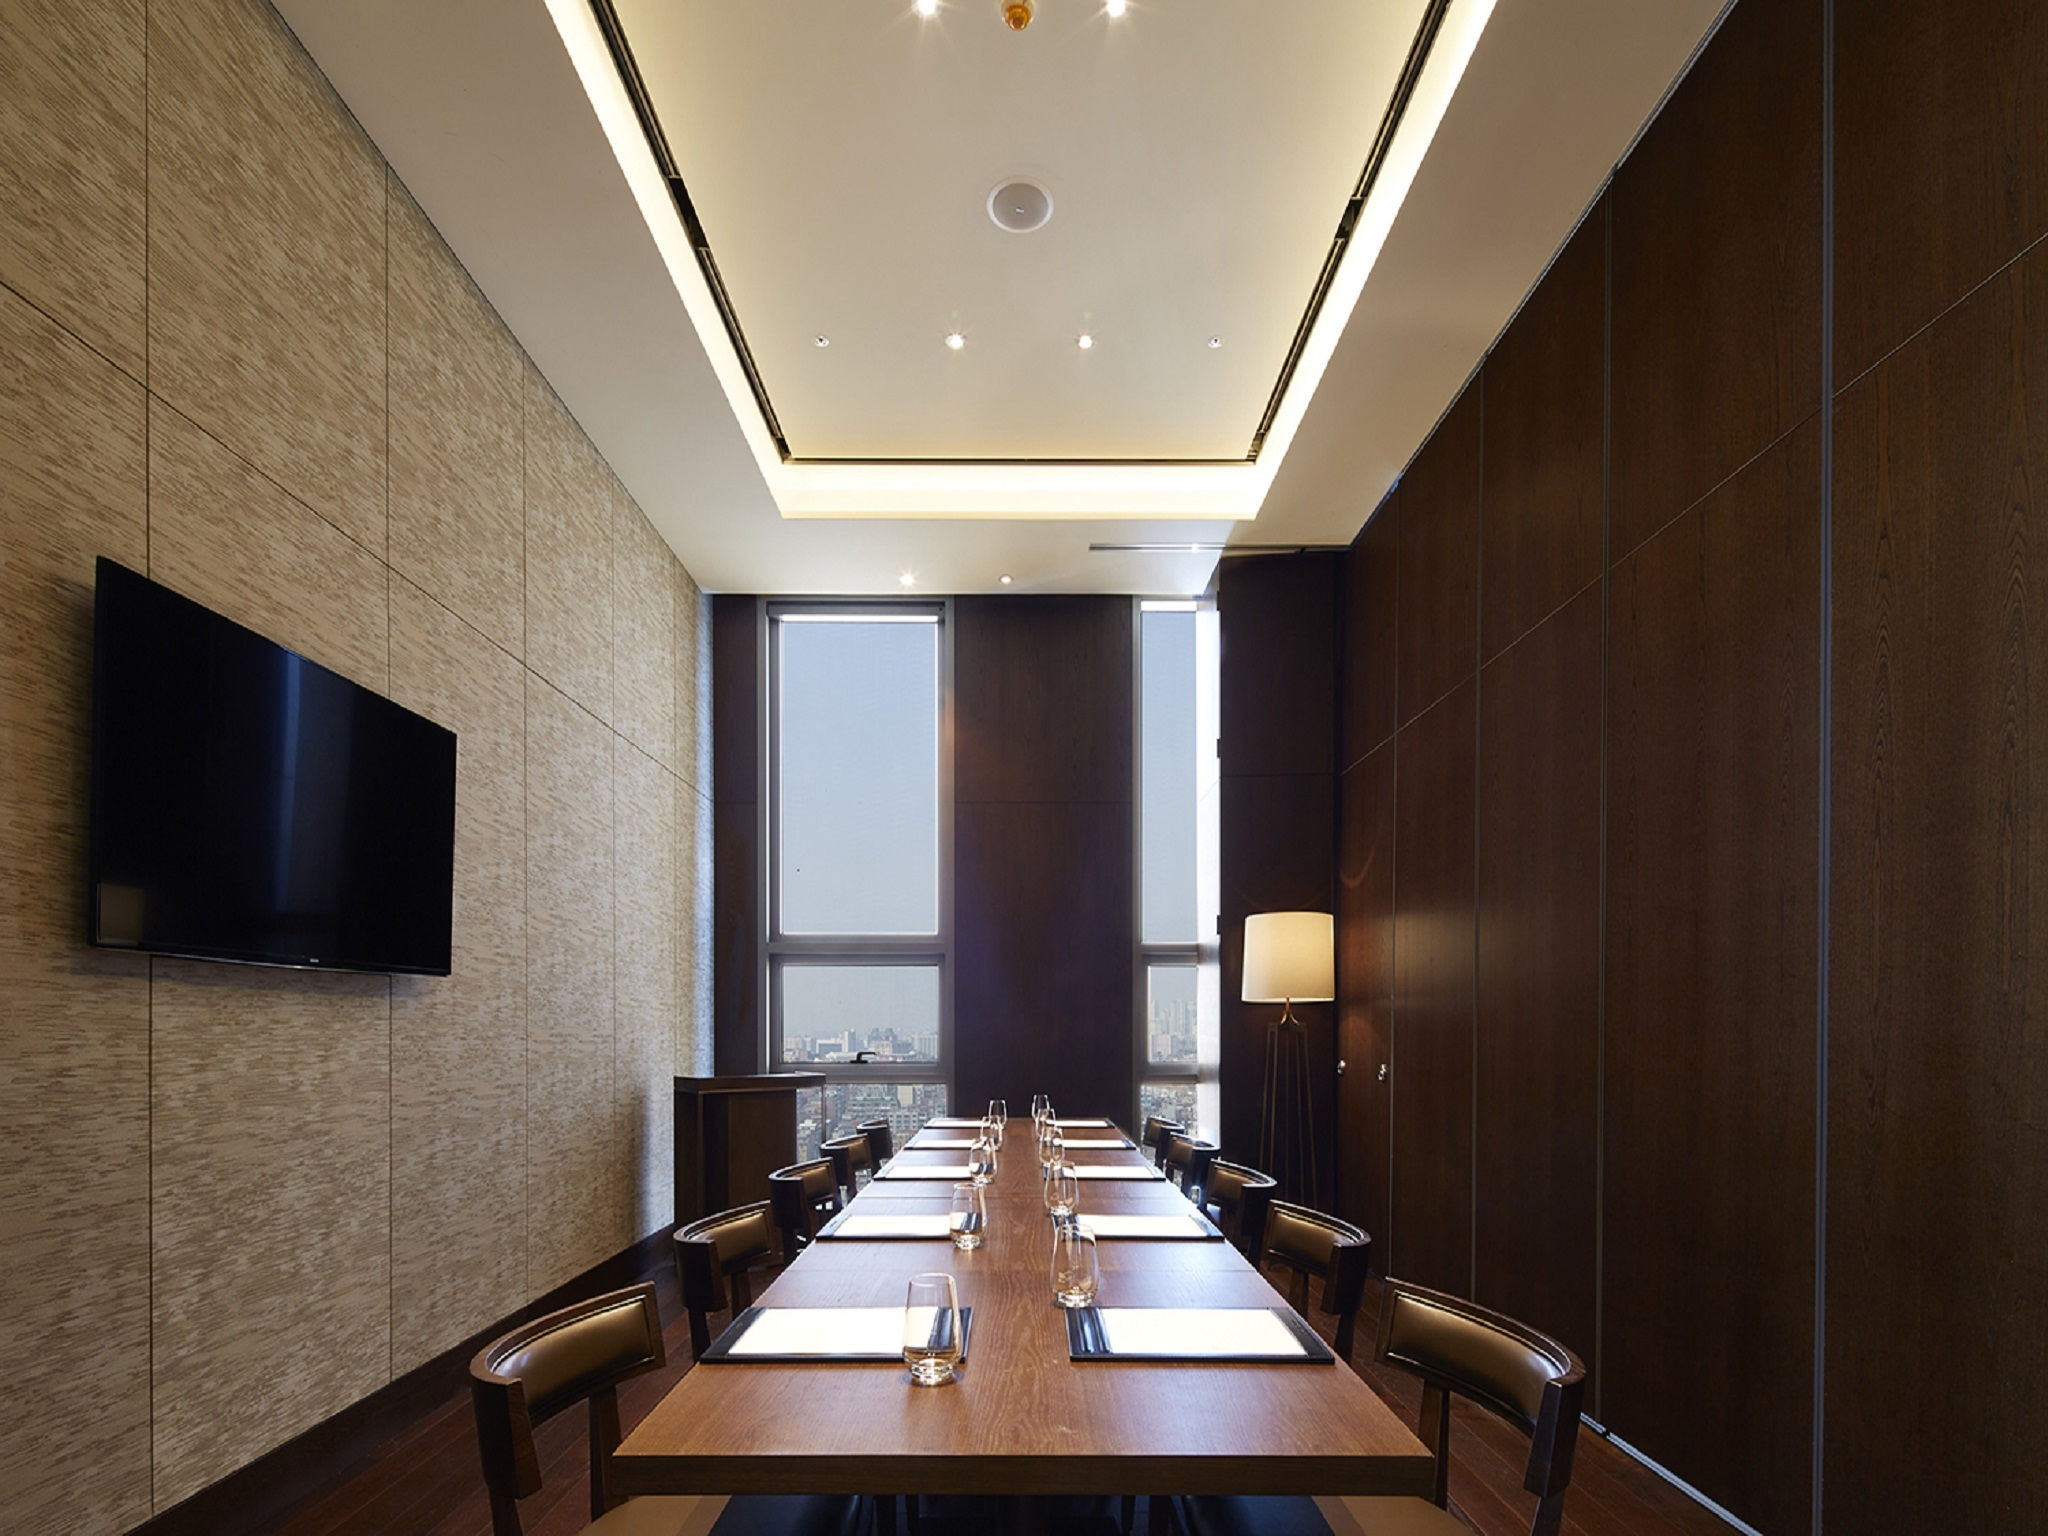 PDR Meeting Room